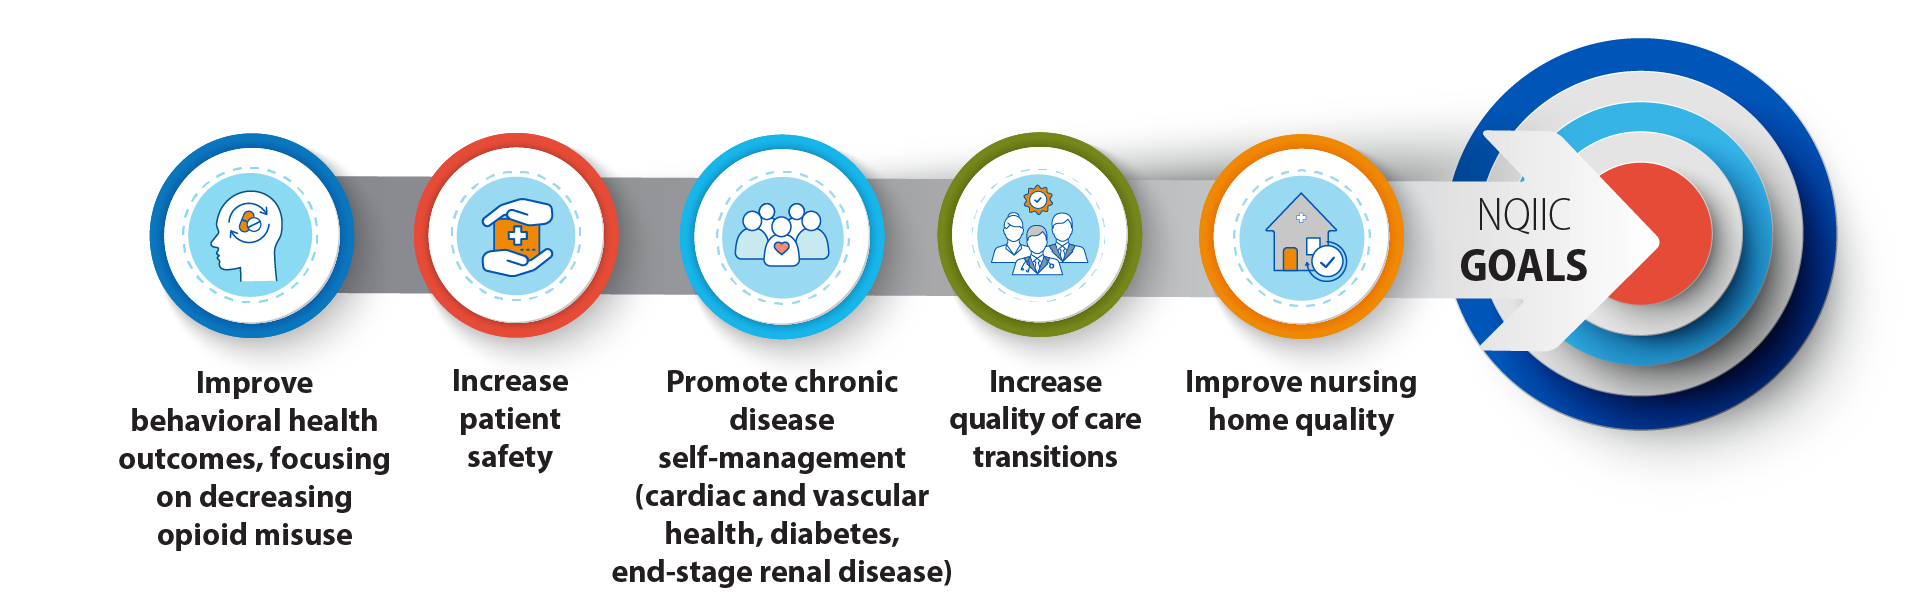 Infographic depicting the 5 goals which make up NQIIC Goals.  Goal 1: Improve behavioral health outcomes, focusing on decreasing opioid misuse Goal 2: Increase patient safety Goal 3: Promote chronic disease self-management (cardiac and vascular health, diabetes, end-stage renal disease) Goal 4: Increase quality of care transitions Goal 5: Improve nursing home quality